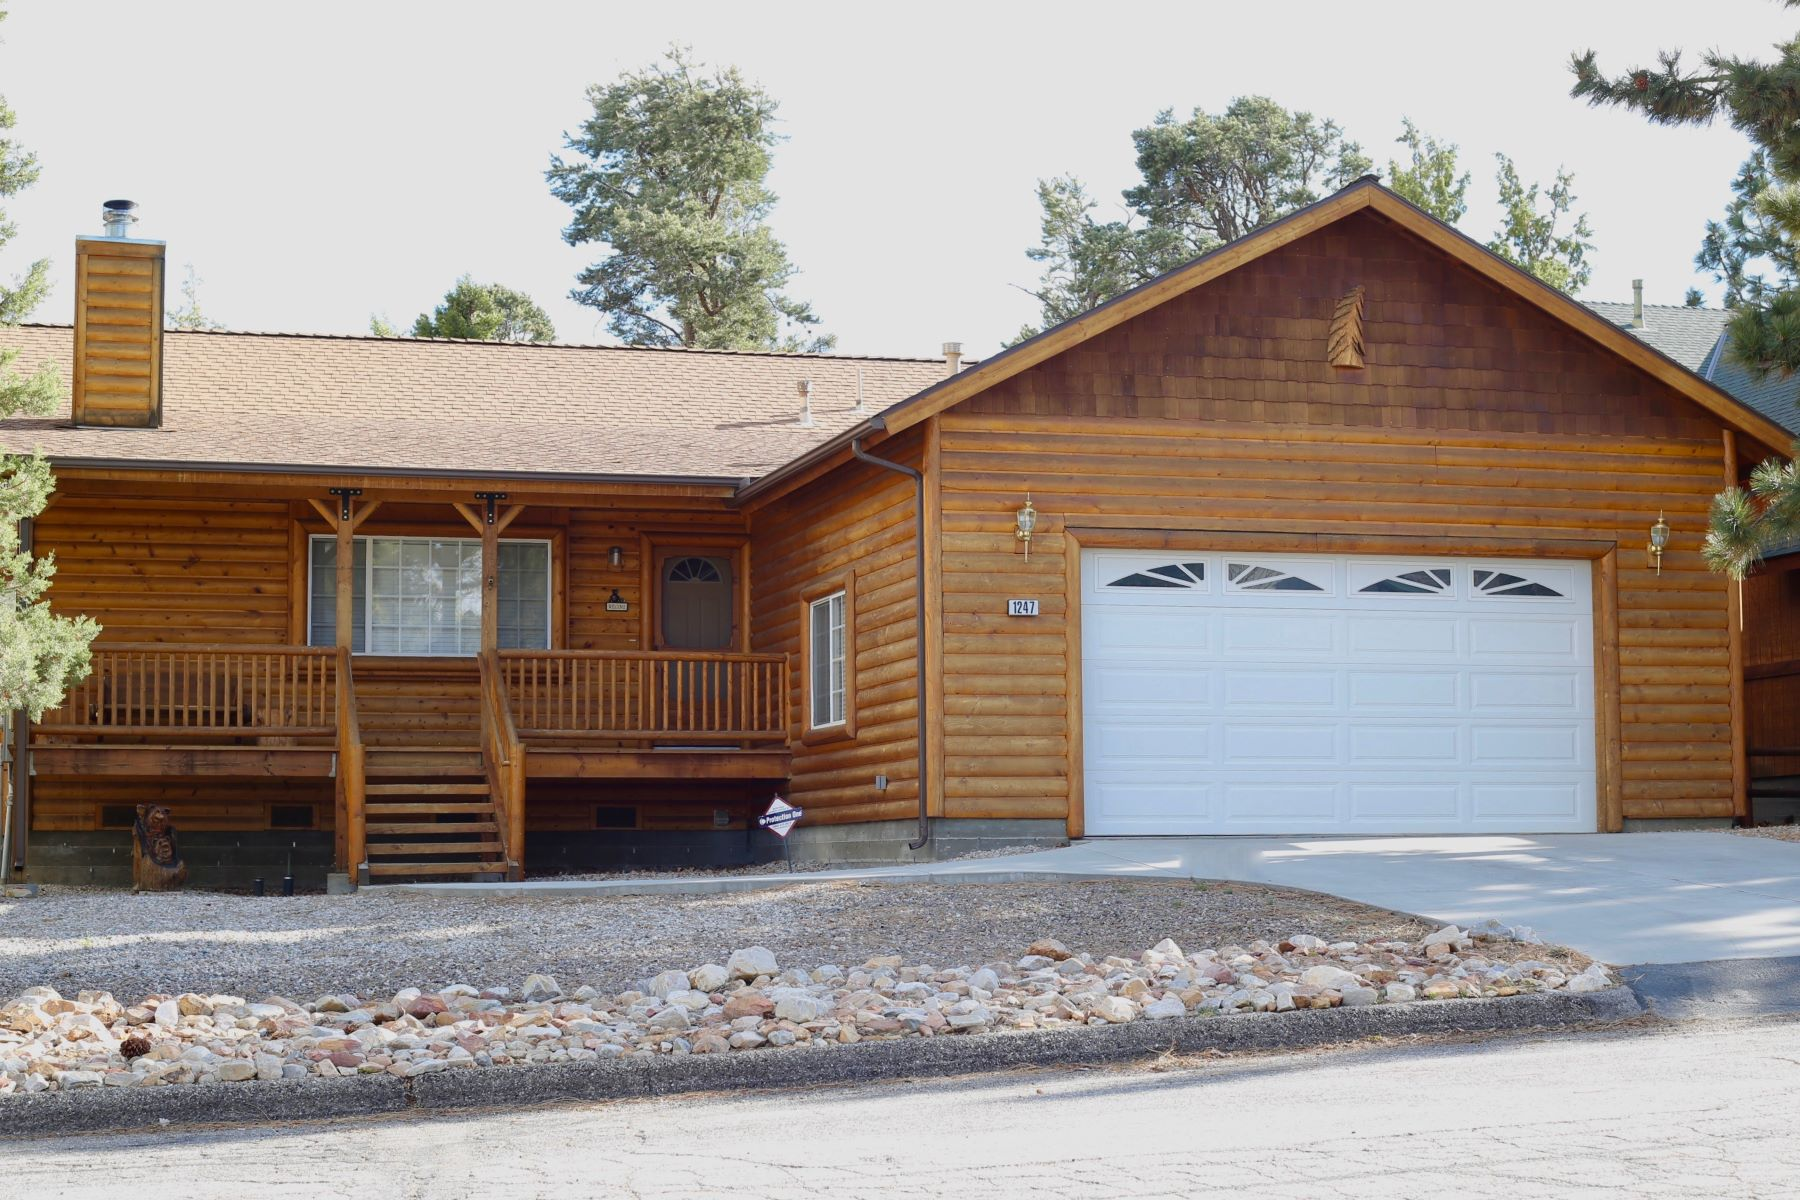 Single Family Home for Sale at Big Bear 1247 Panorama Drive Big Bear City, California 92314 United States